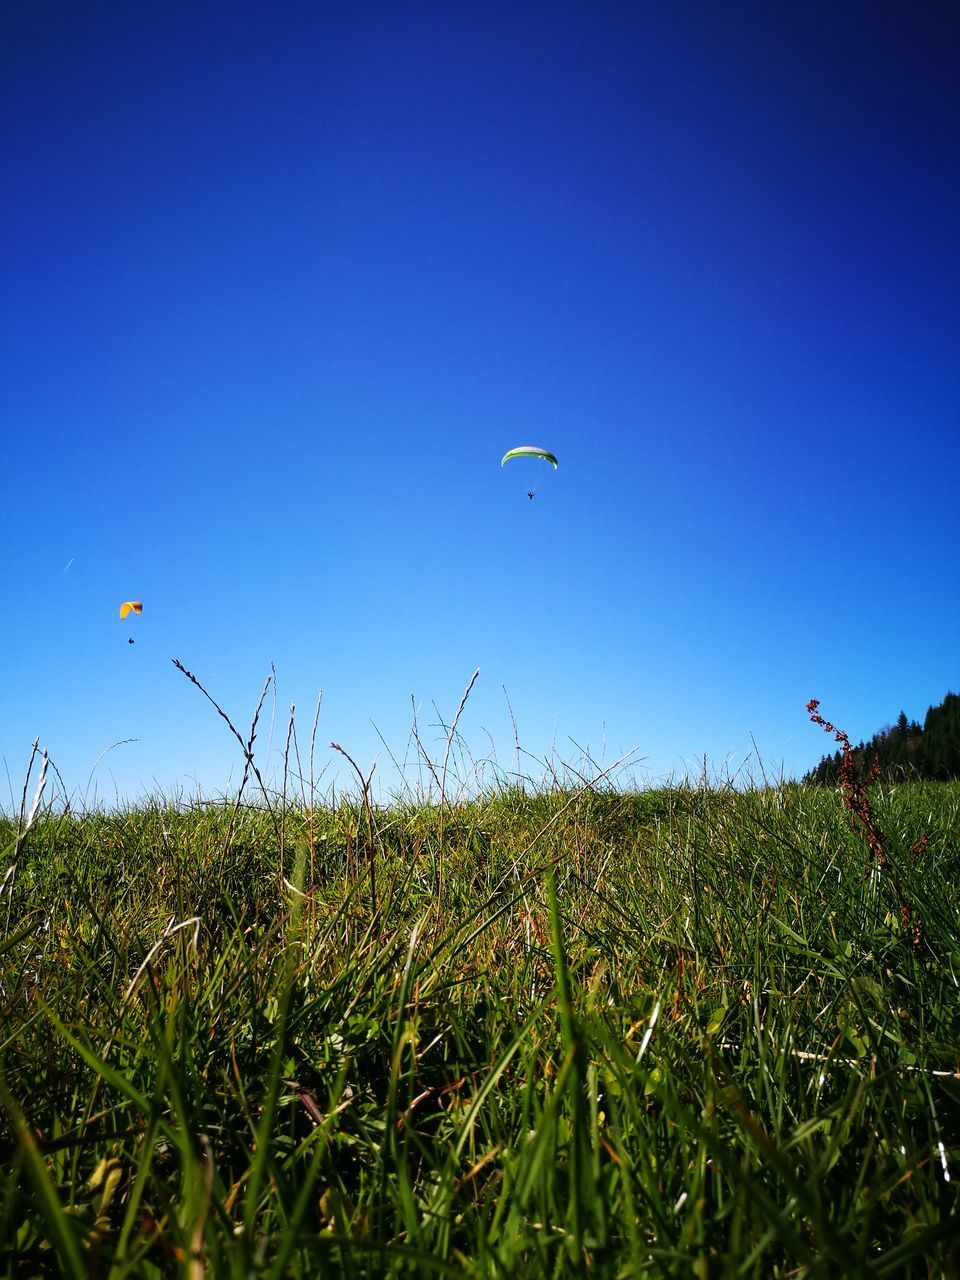 grass, field, nature, blue, parachute, clear sky, landscape, adventure, flying, outdoors, kite, summer, growth, paragliding, beauty in nature, mid-air, day, sky, one person, blue sky, people